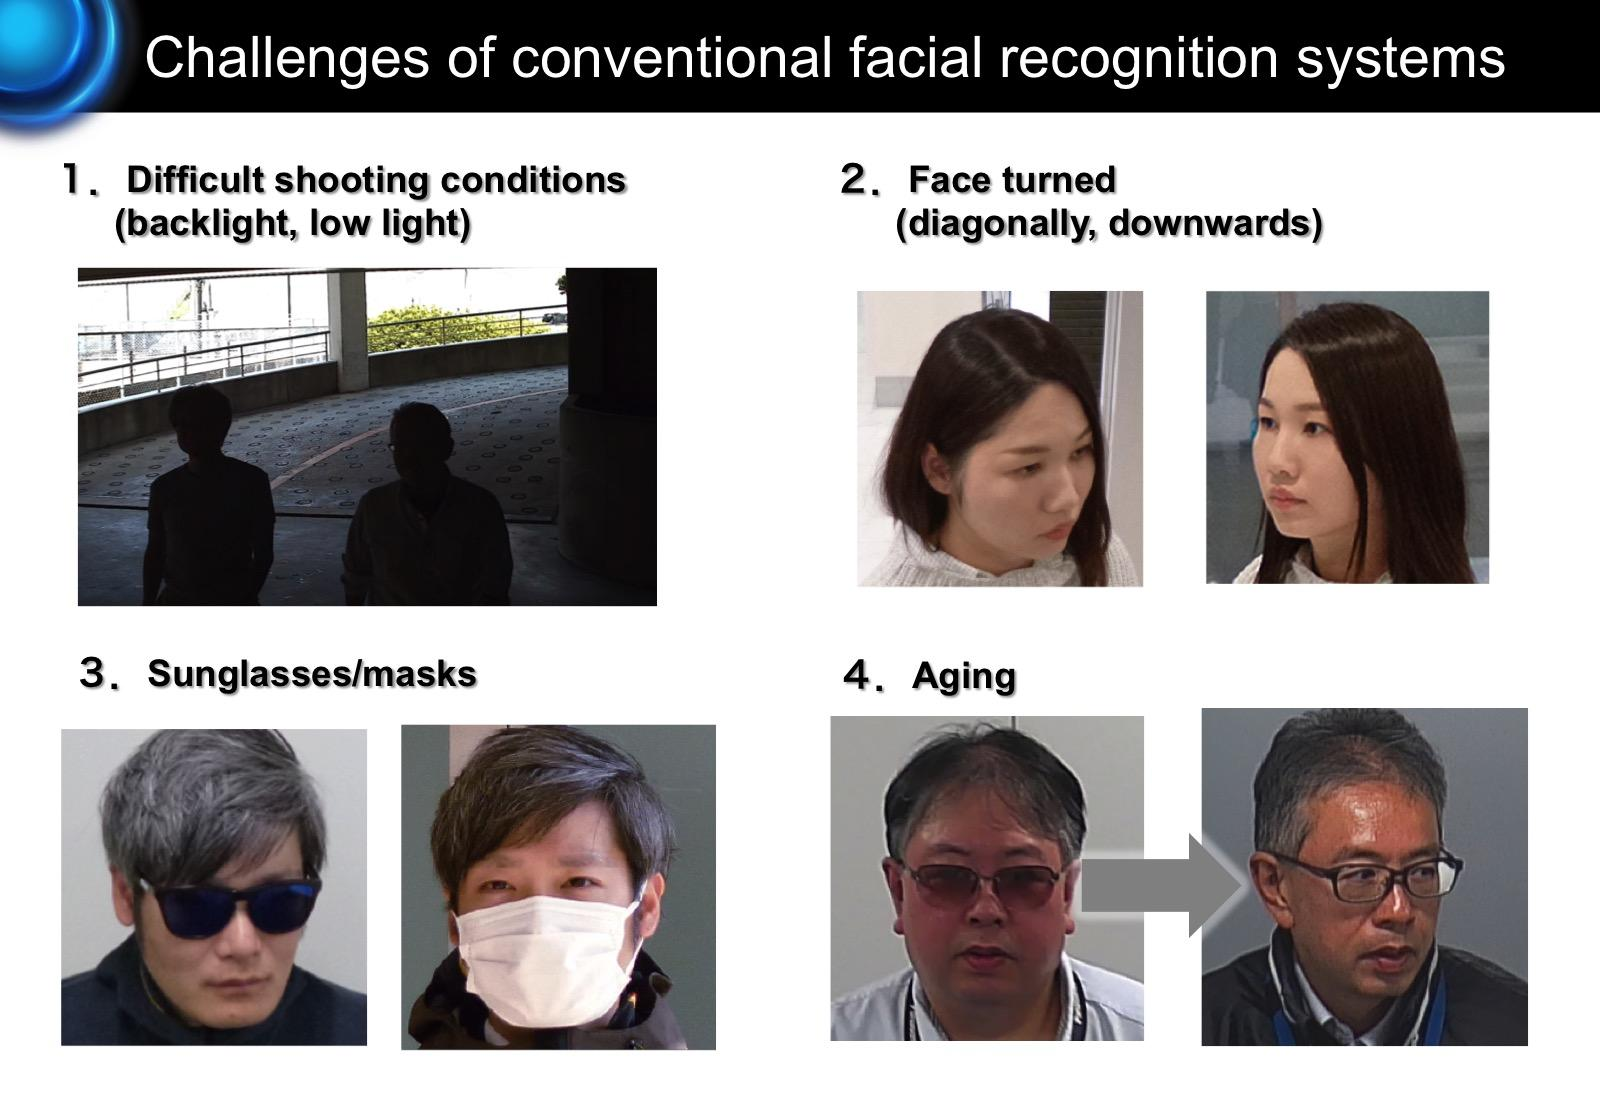 image: challenges facial recognition systems must overcome